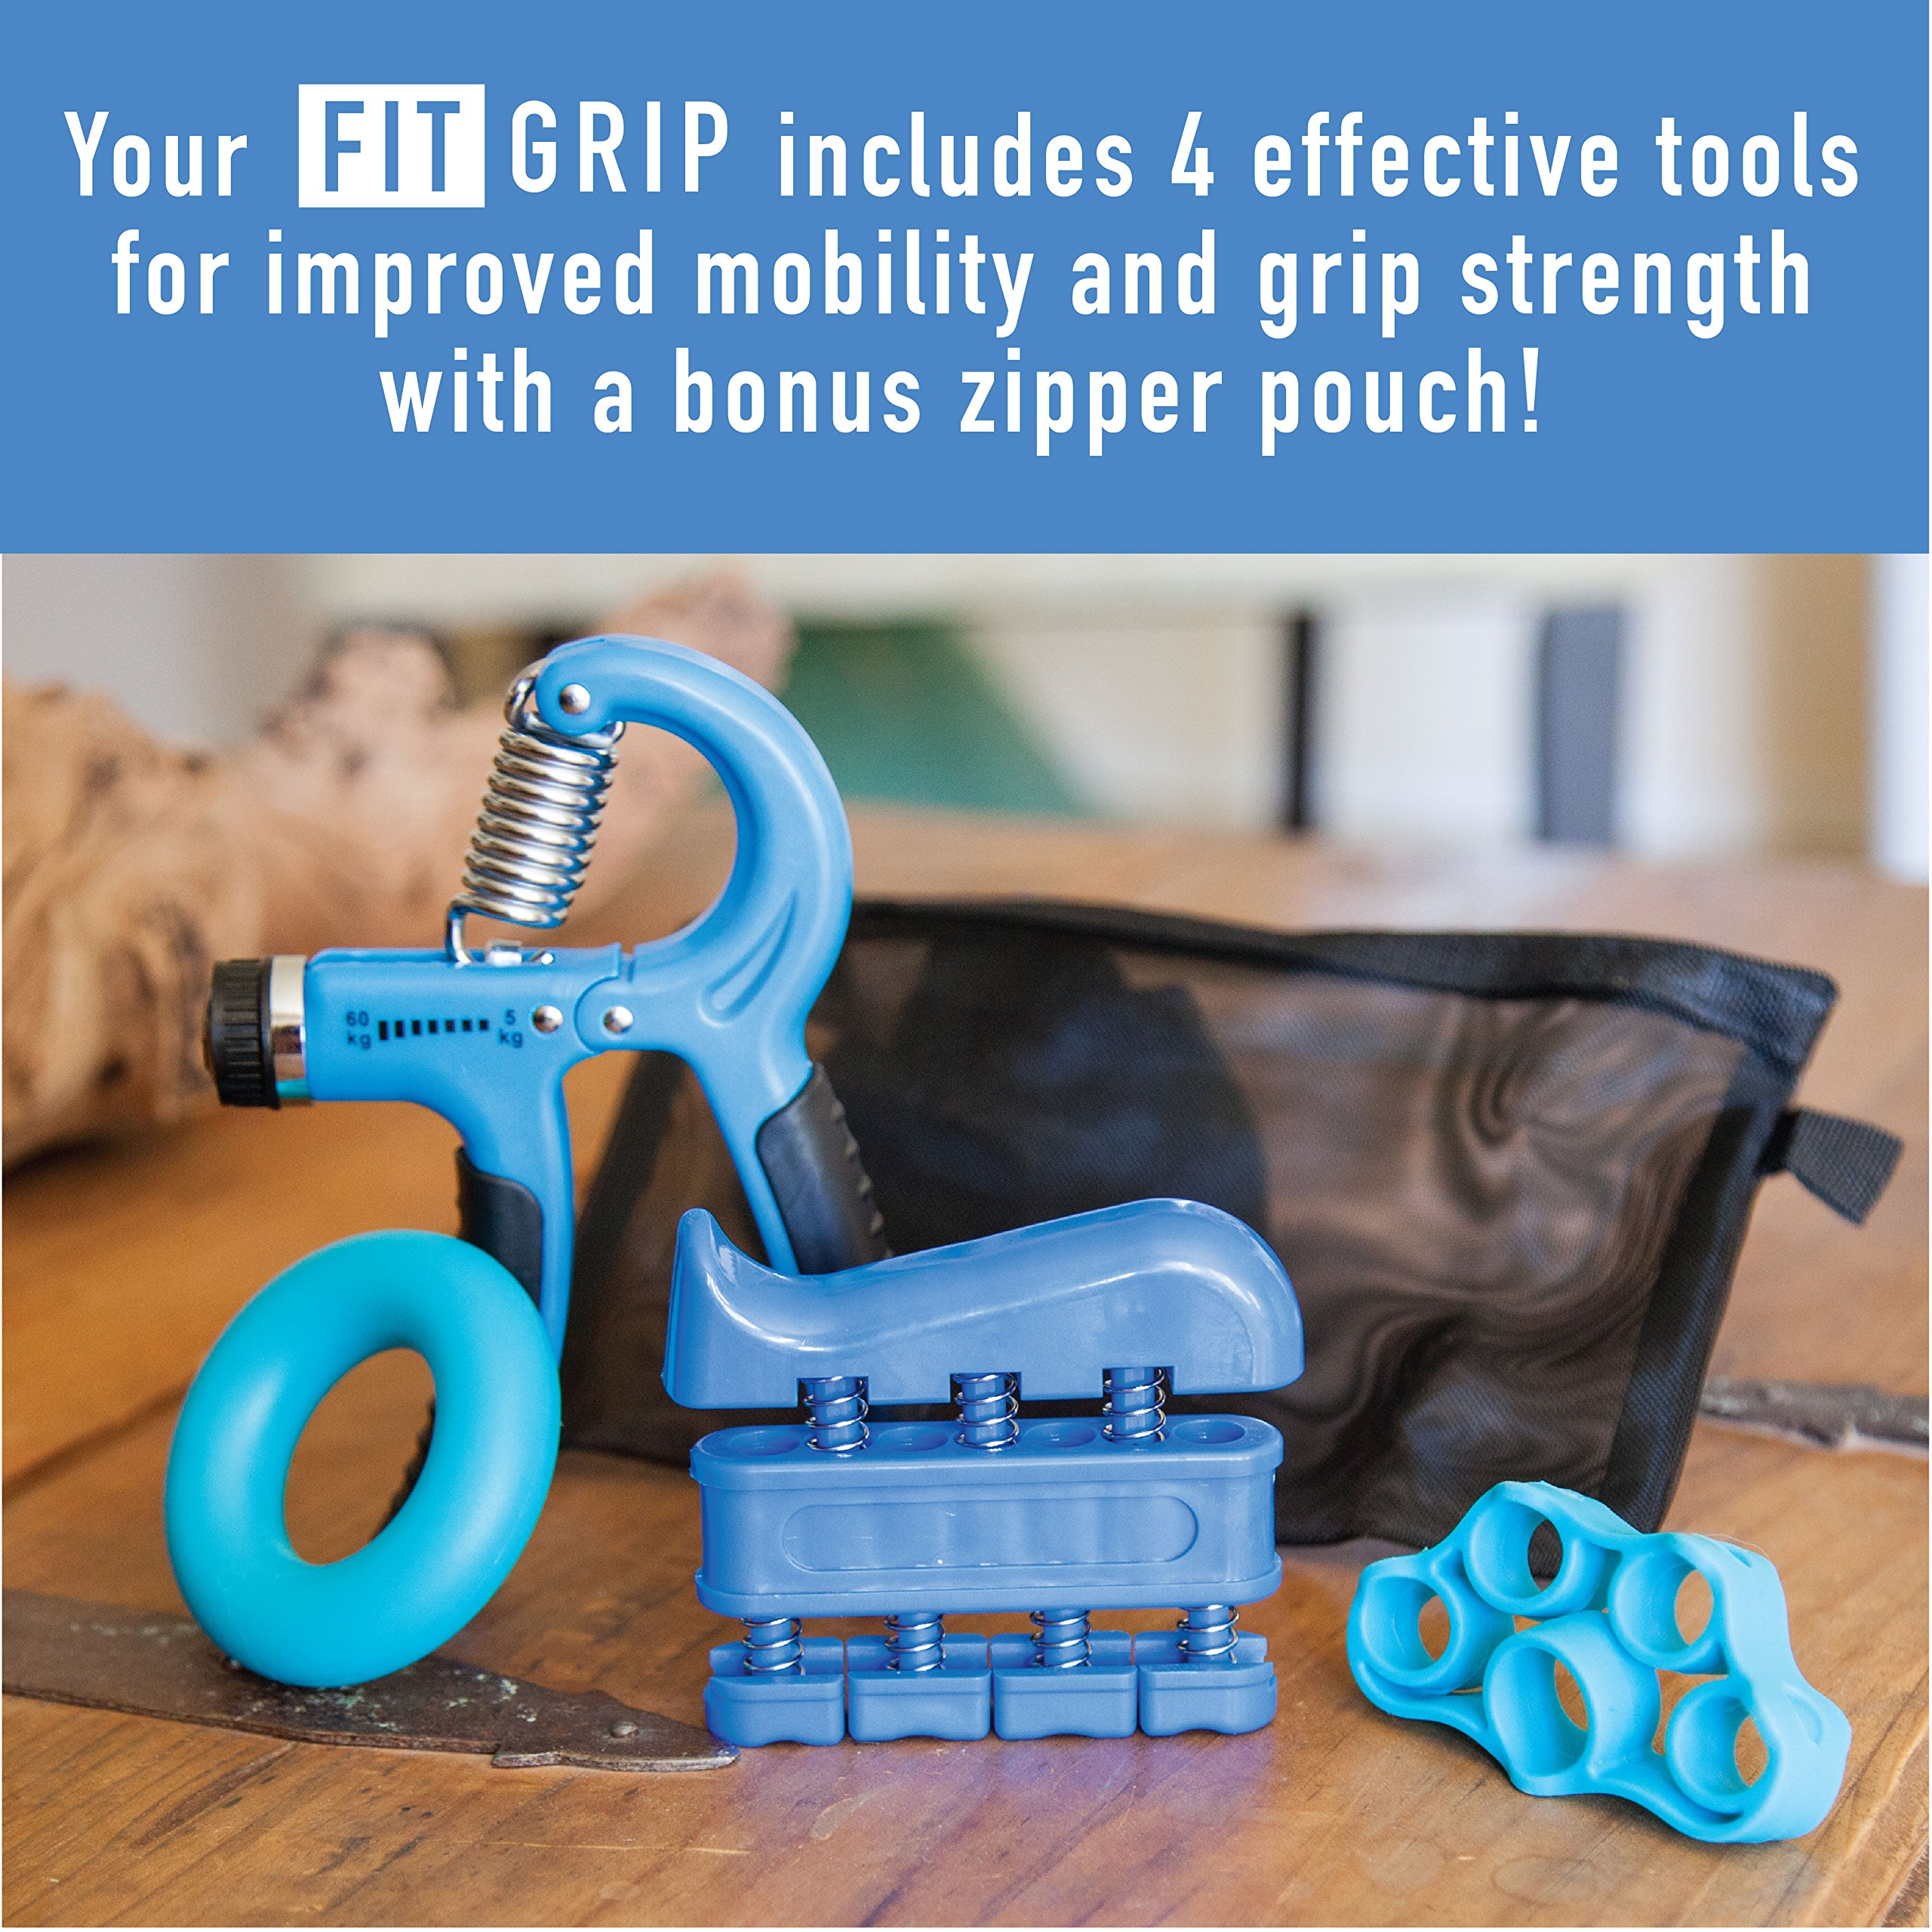 Hand Grip Strength and Forearm Trainer 4-Pack Bundle: Resistance Grip Strengthener, Finger Trainer, Finger Exerciser Stretcher, Grip Ring | Ideal for Athletes, Therapy for Arthritis, Carpal Tunnel by Fit Grip (Image #2)